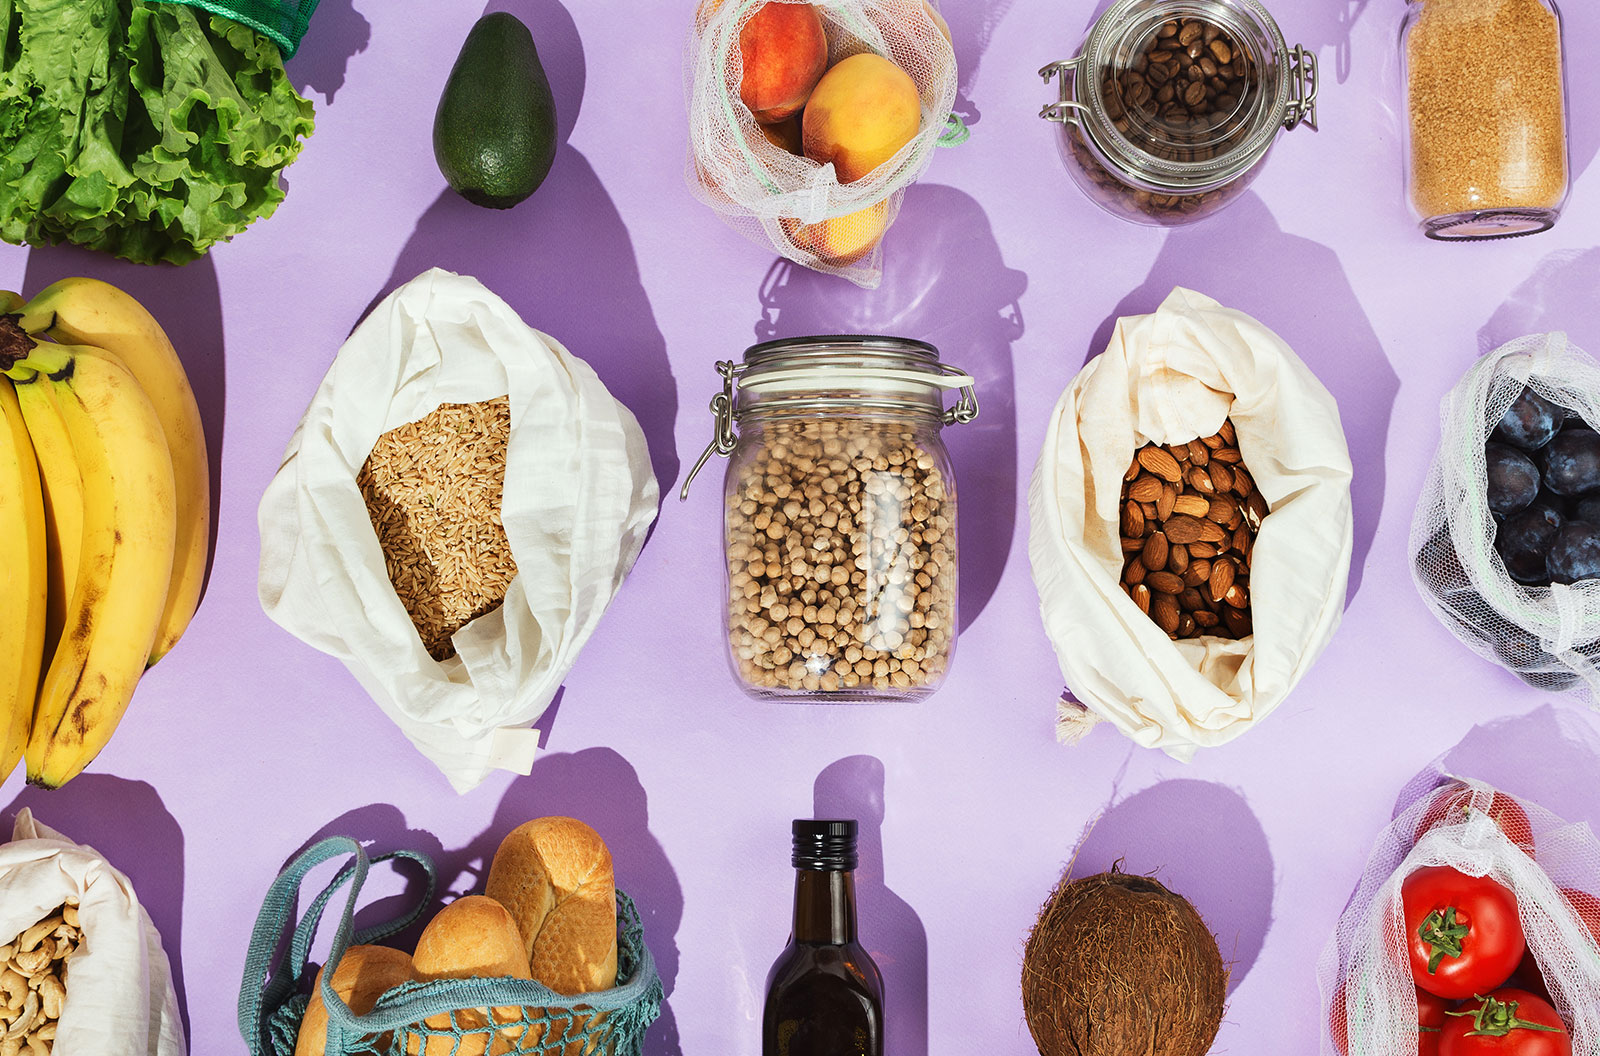 Fruits, greens and vegetables in mesh bags and glass jars on against a purple background